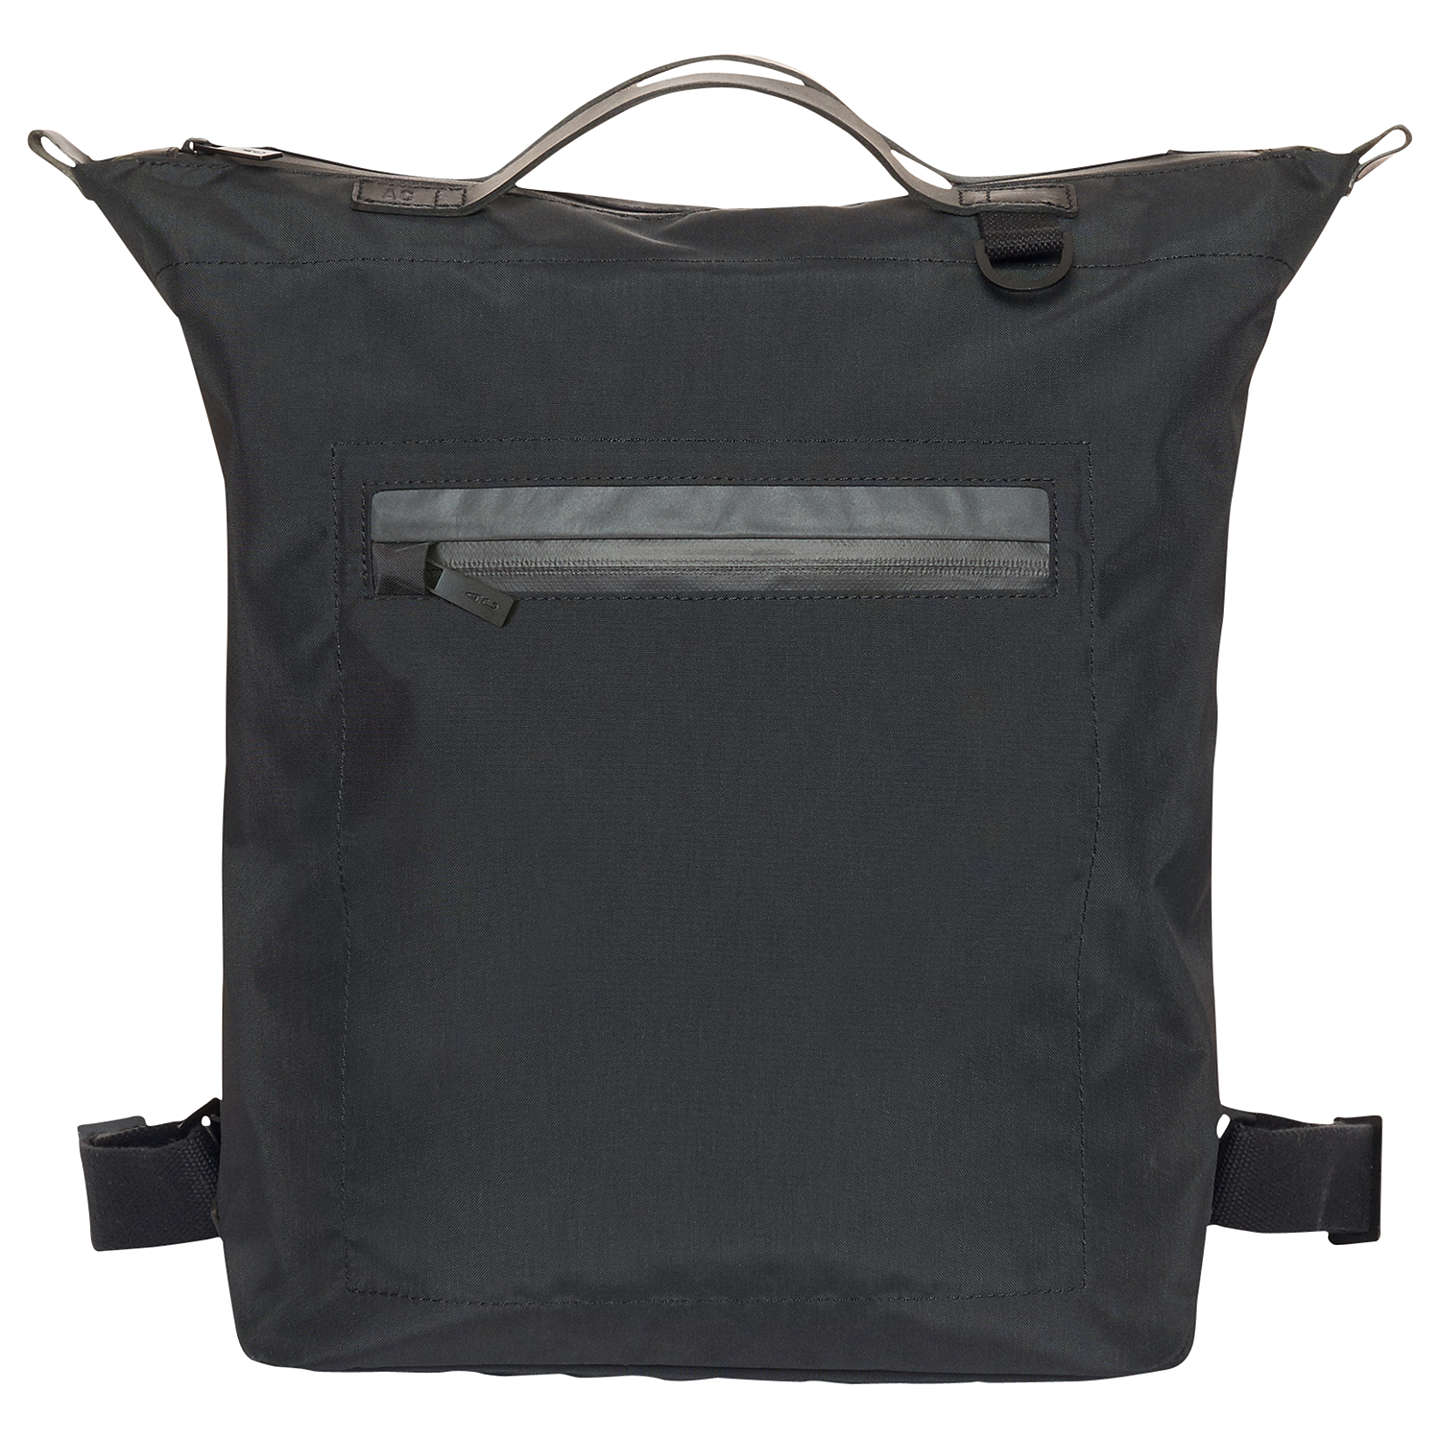 Outlet Low Price Fee Shipping Sneakernews For Sale Ally Capellino Hoy Travel Cycle rucksack Cheap Sale Big Sale NKHmA